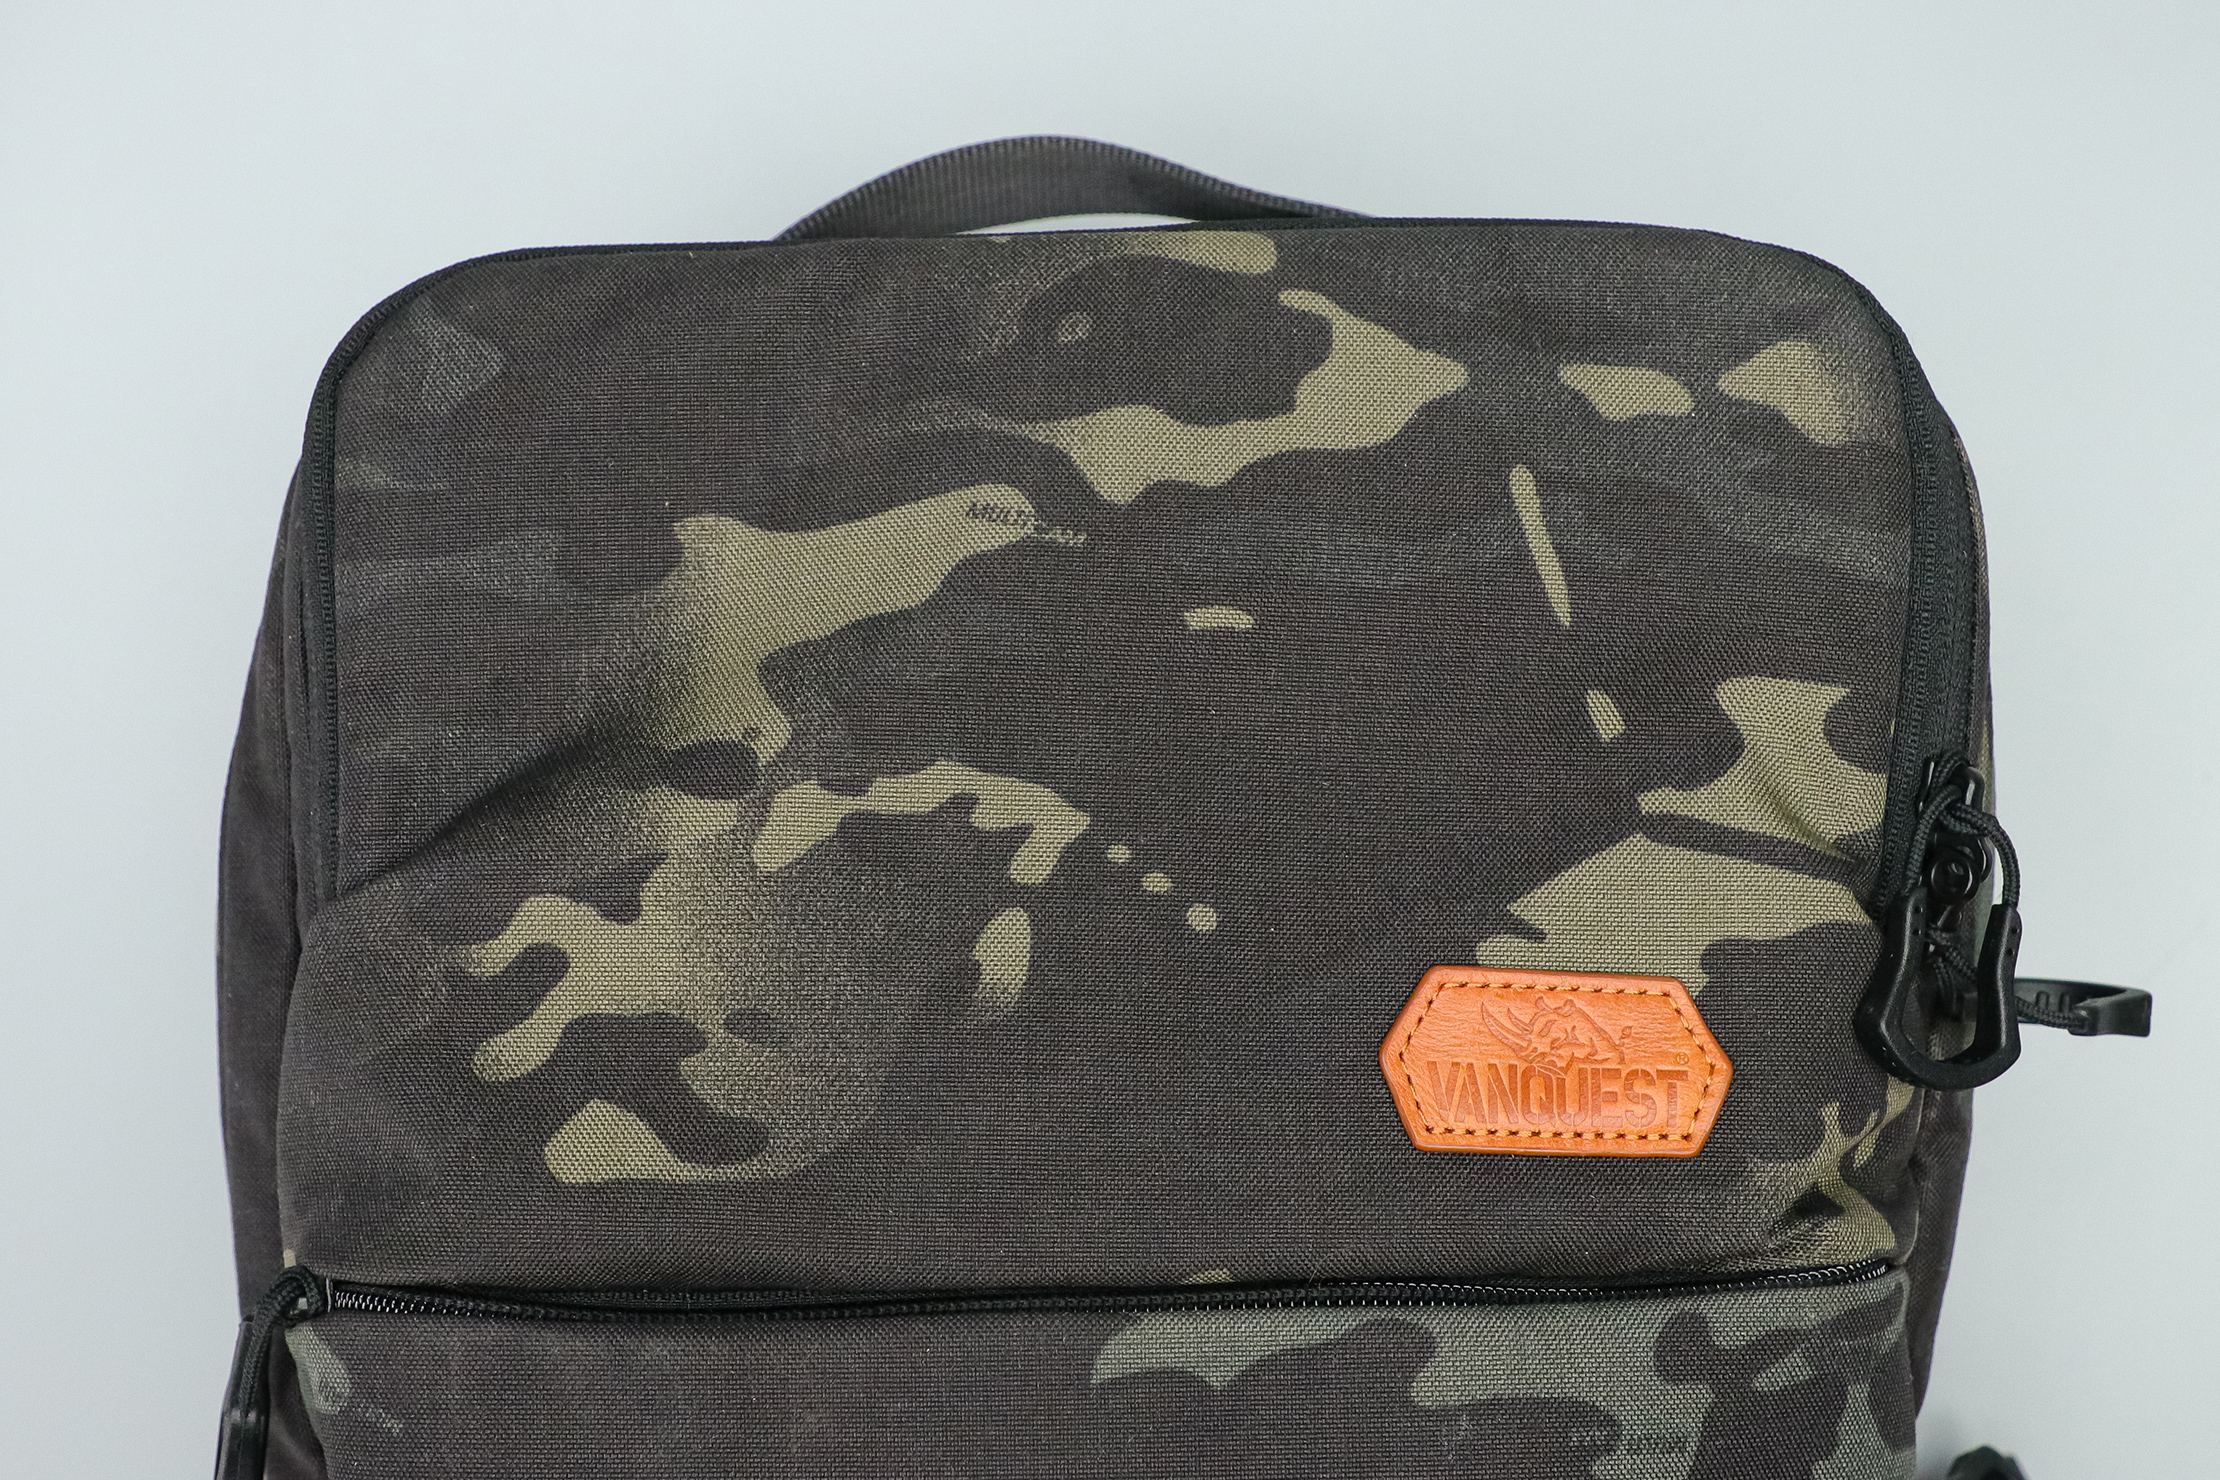 Vanquest ADDAX-18 Backpack logo and material